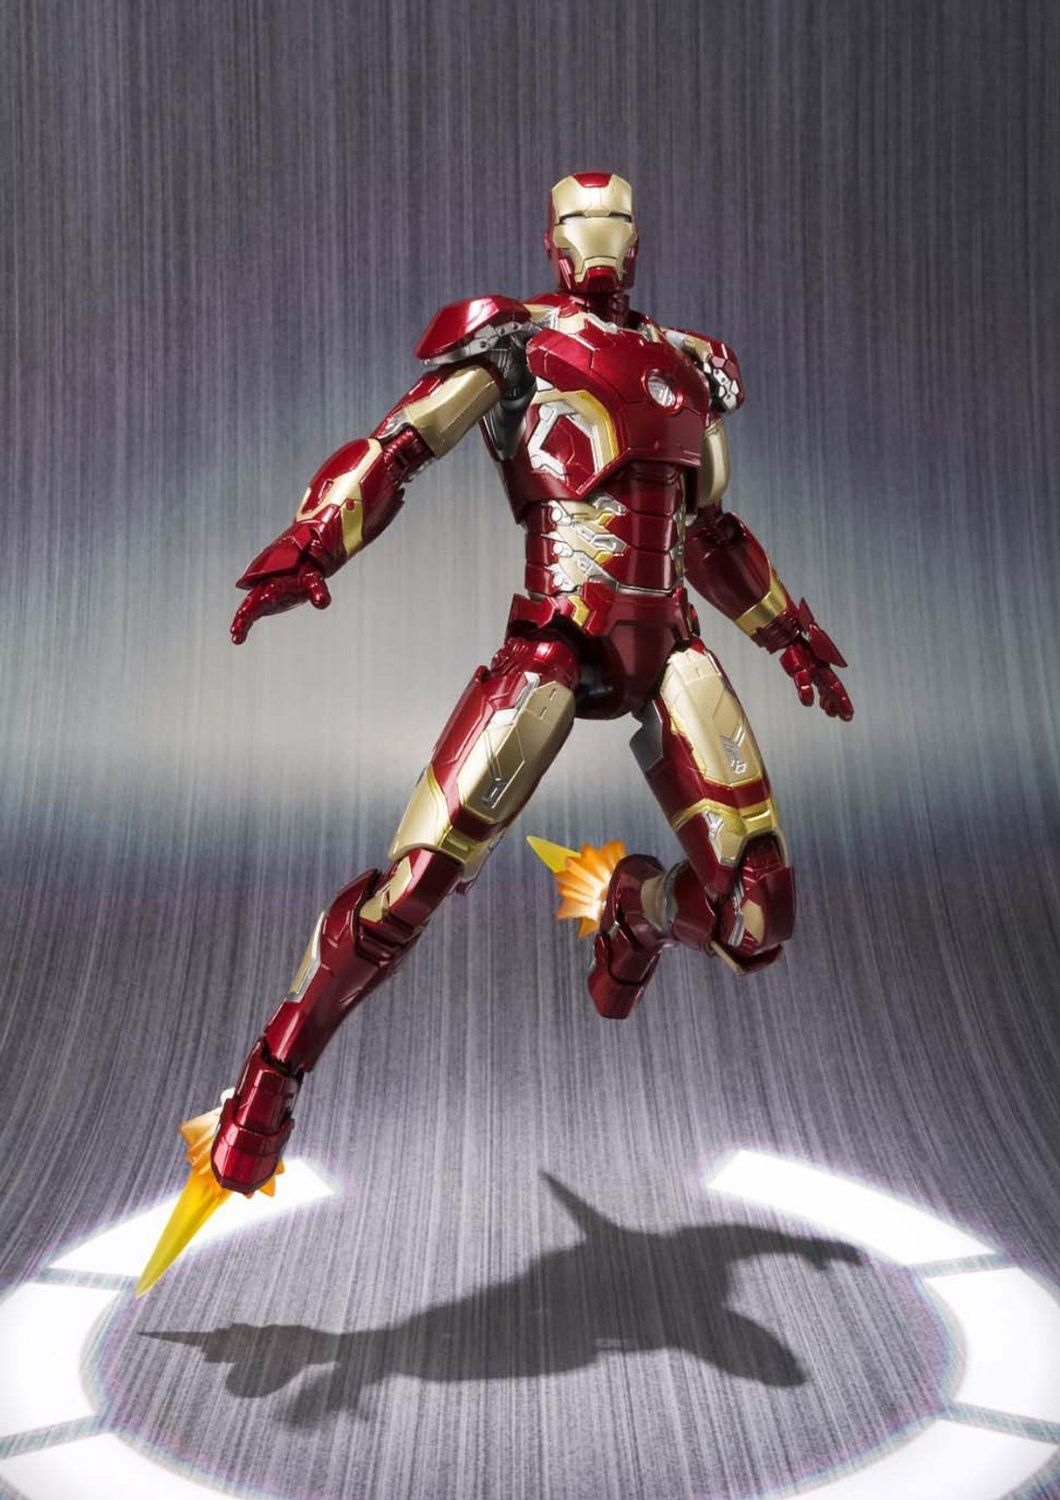 S.H.Figuarts Iron Man Mark 43 Marvel Avengers Age of Ultron Figure Toy No Box